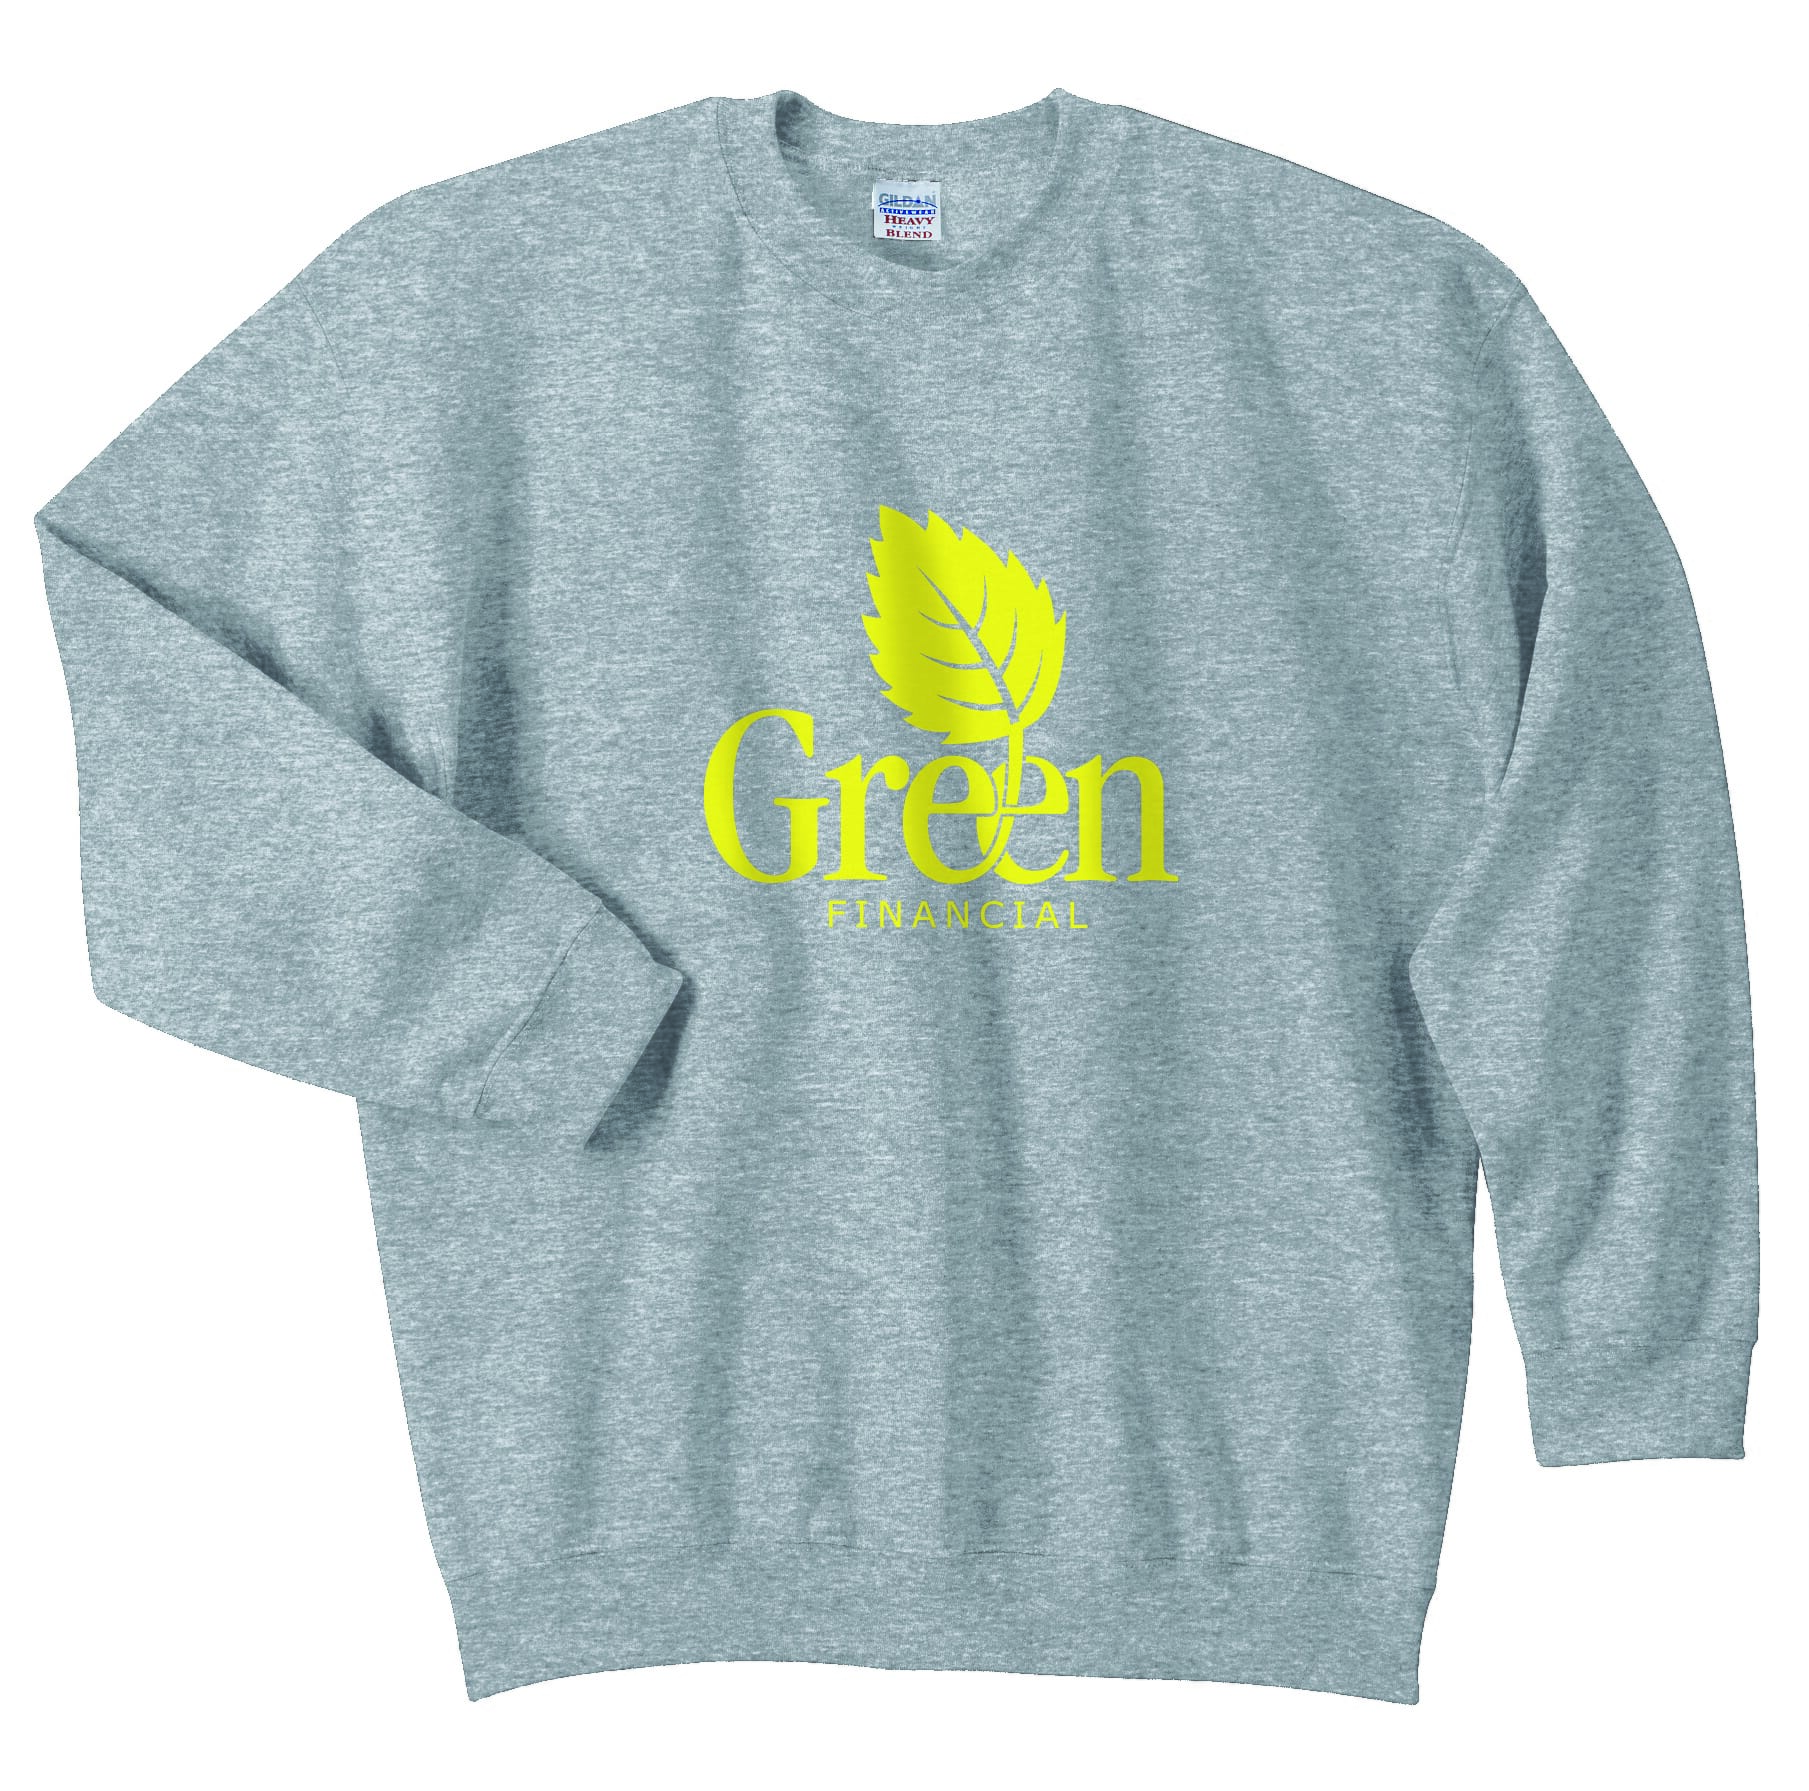 Gray sweatshirt with yellow logo